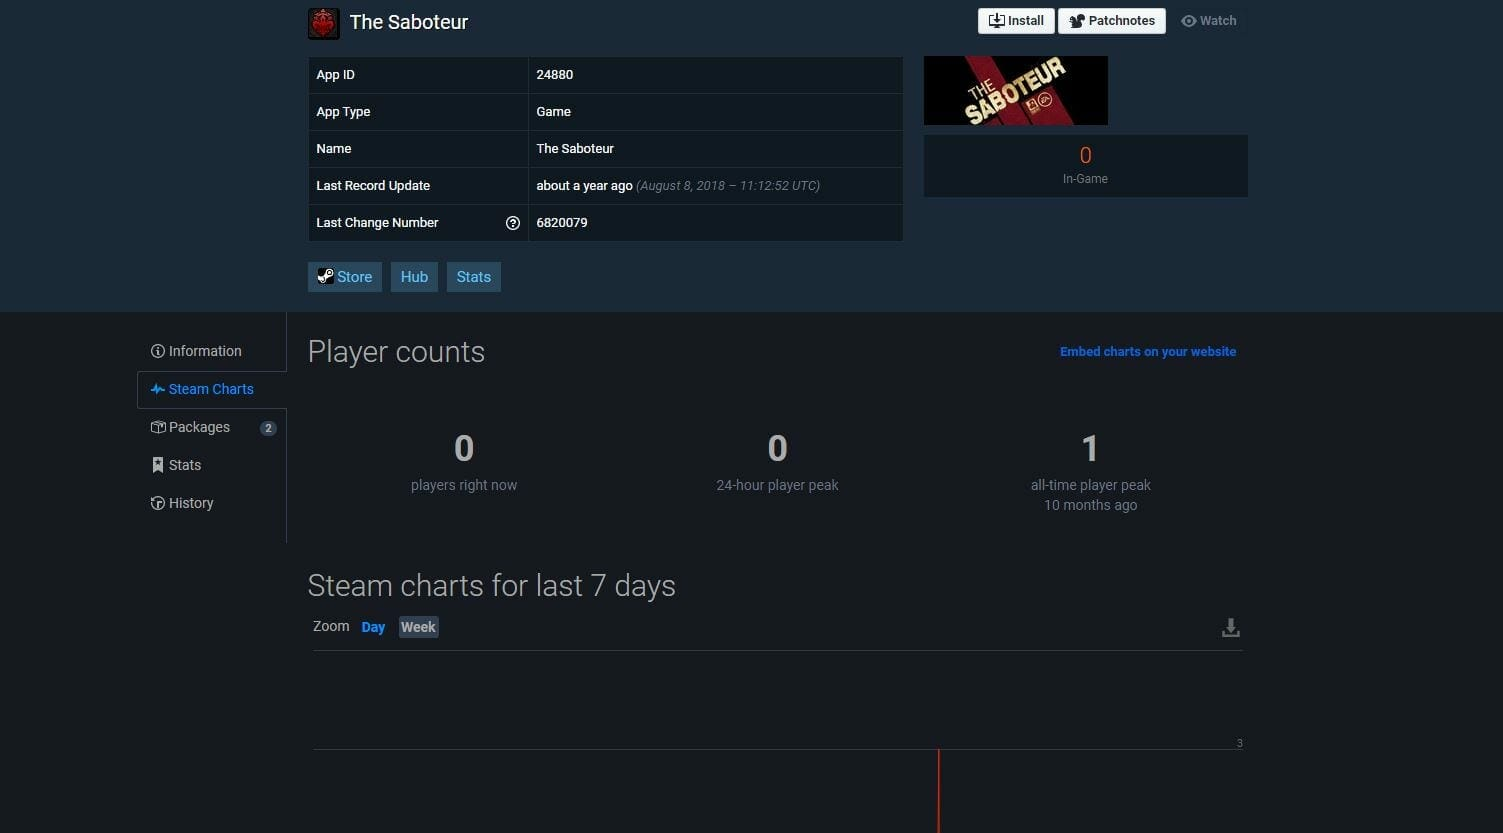 The Saboteur on Steam DB - EA Games on Steam Could Happen as Hinted by Database Updates